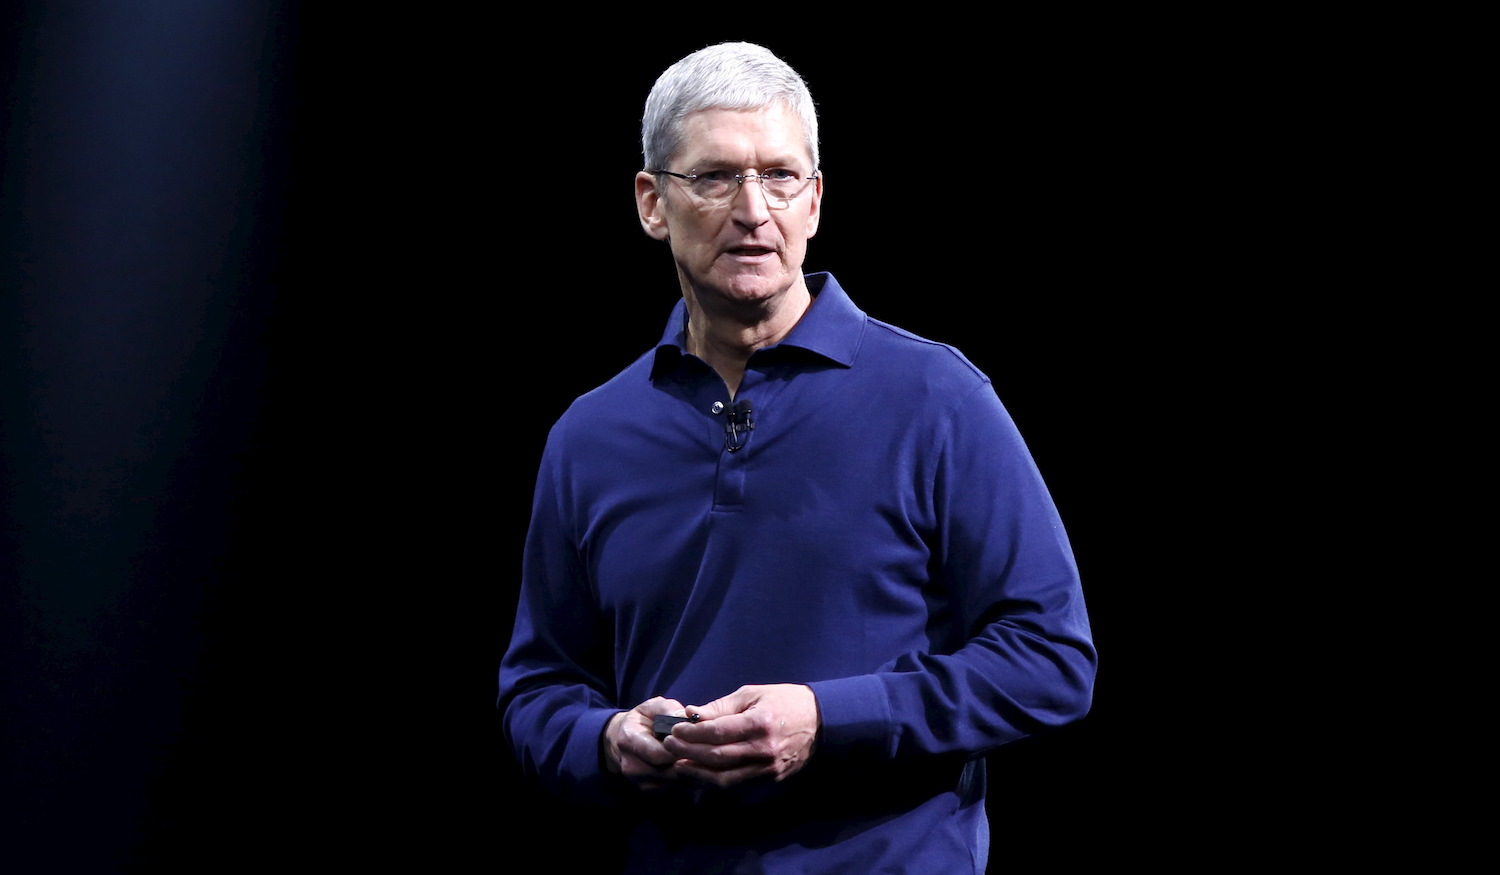 The full text of the open letter to Tim cook